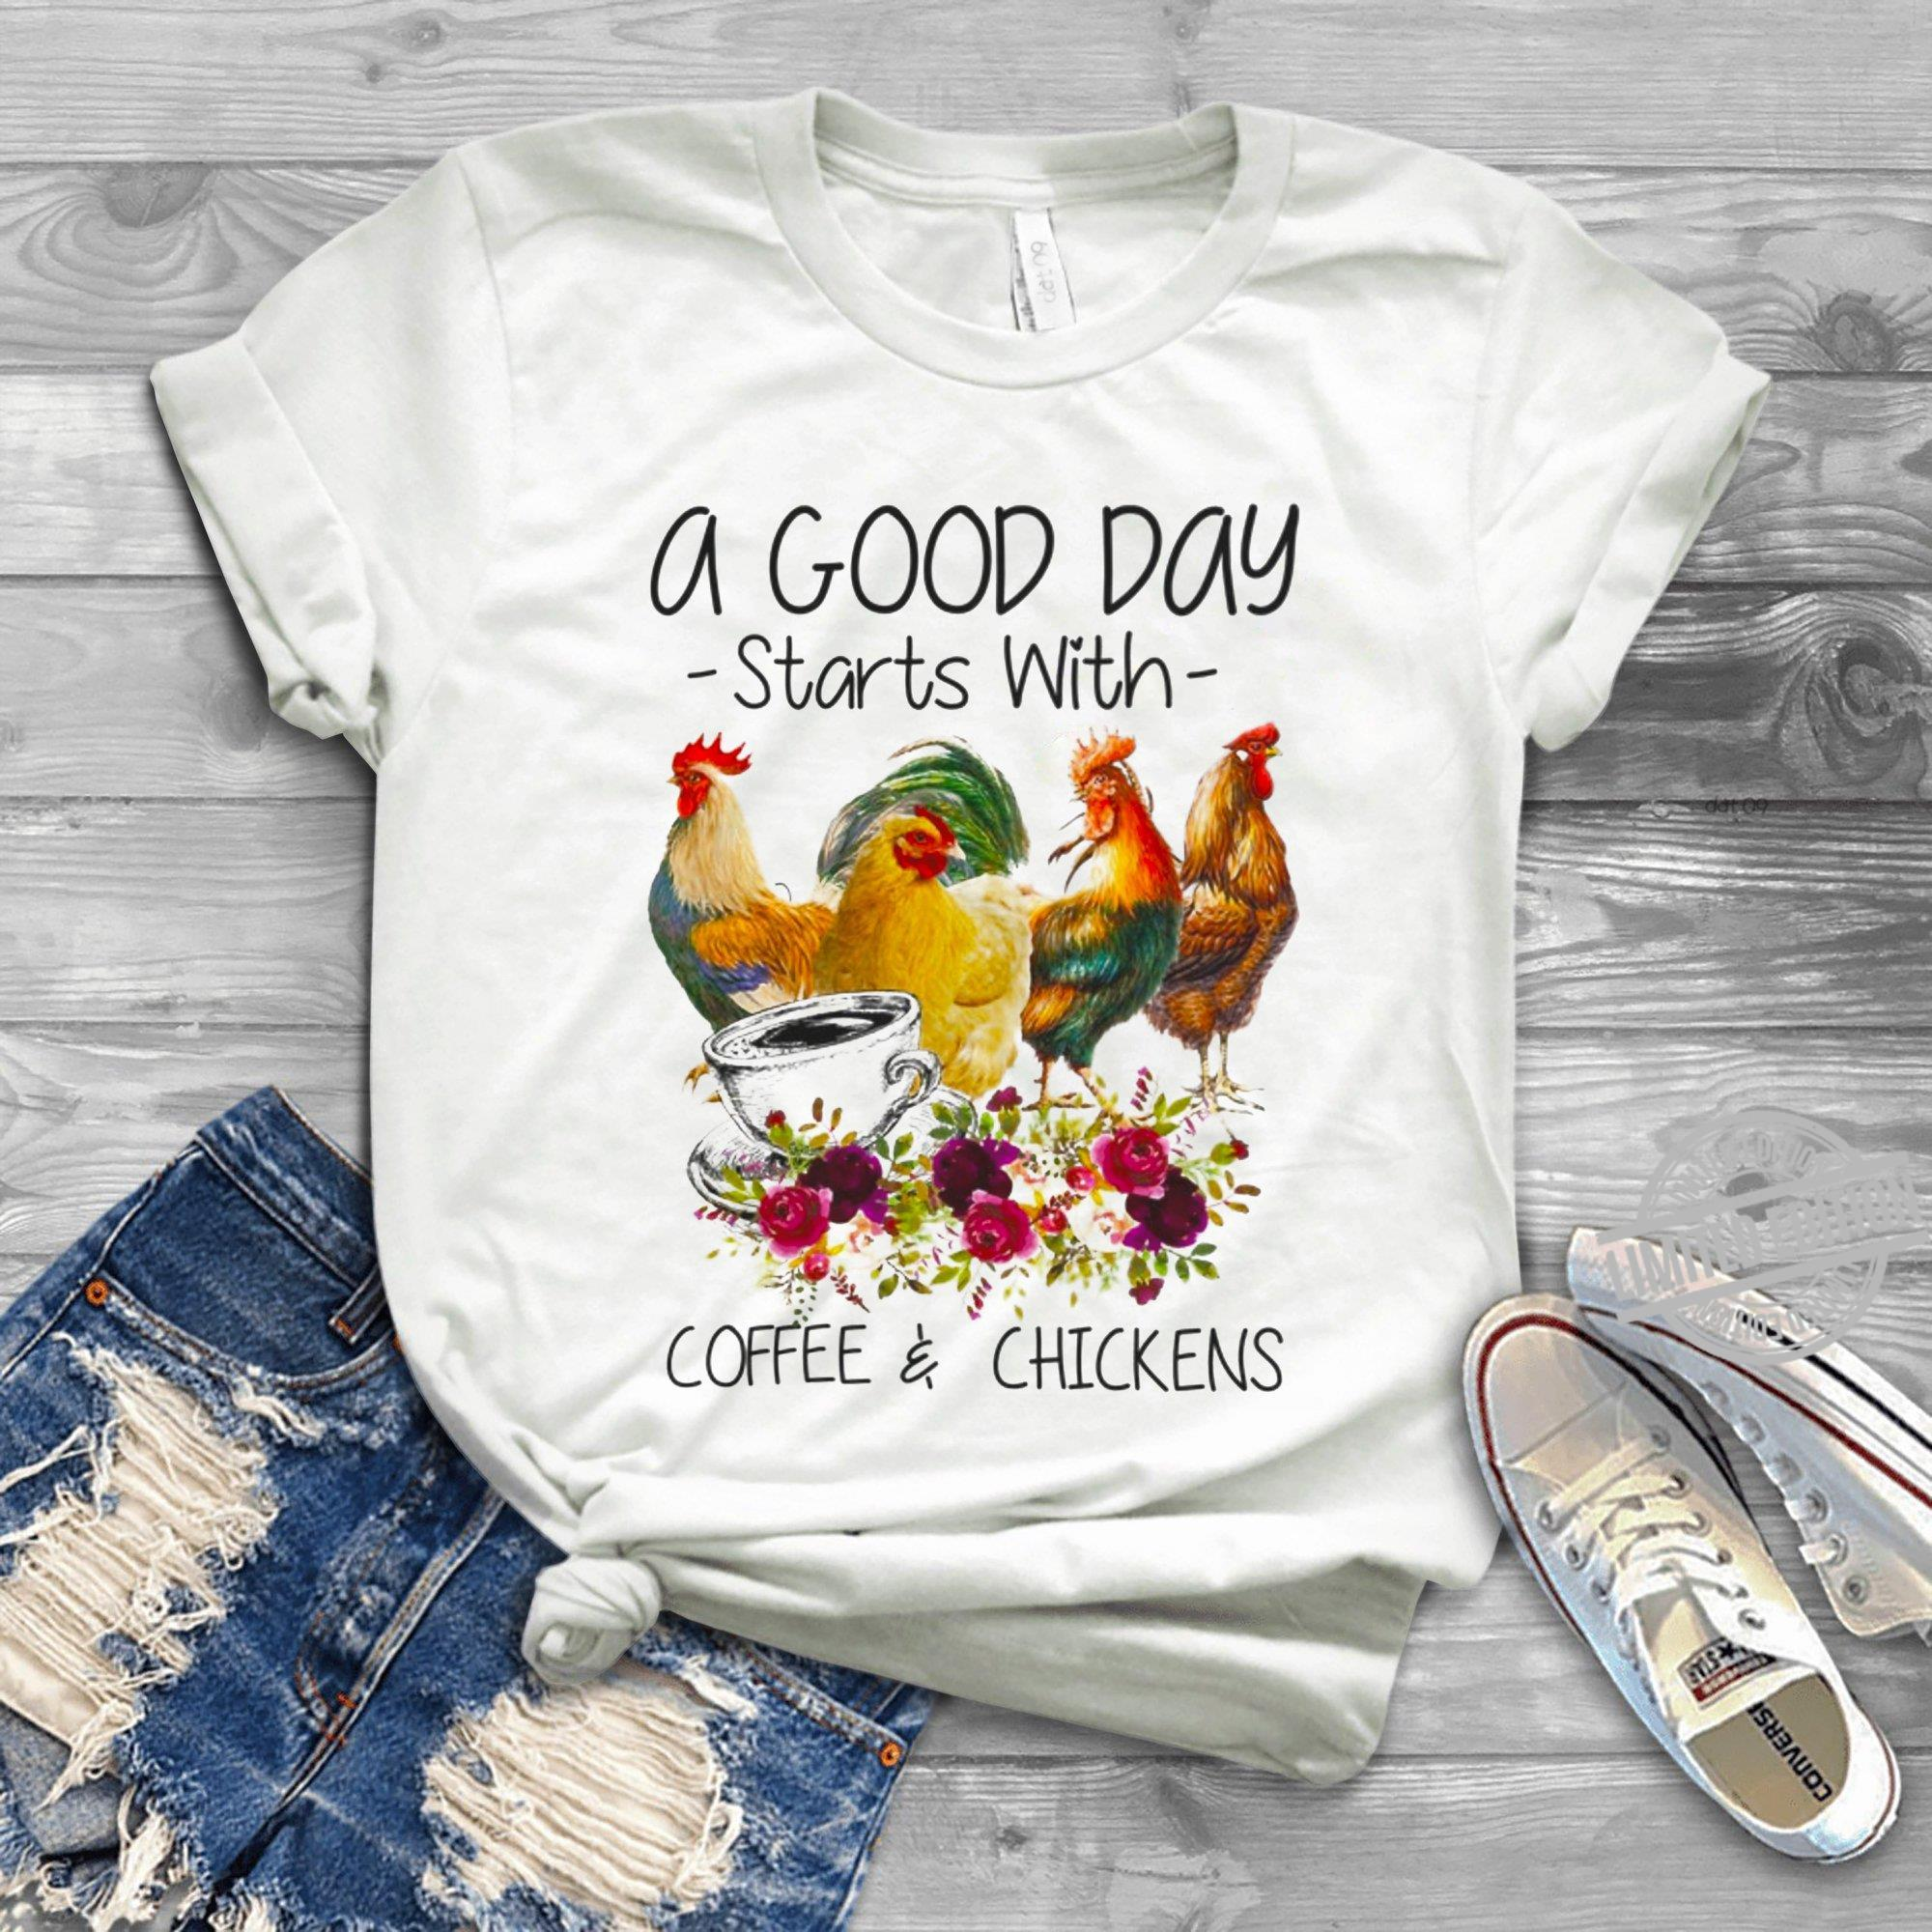 A Good Day Starts With Coffee & Chickens Shirt